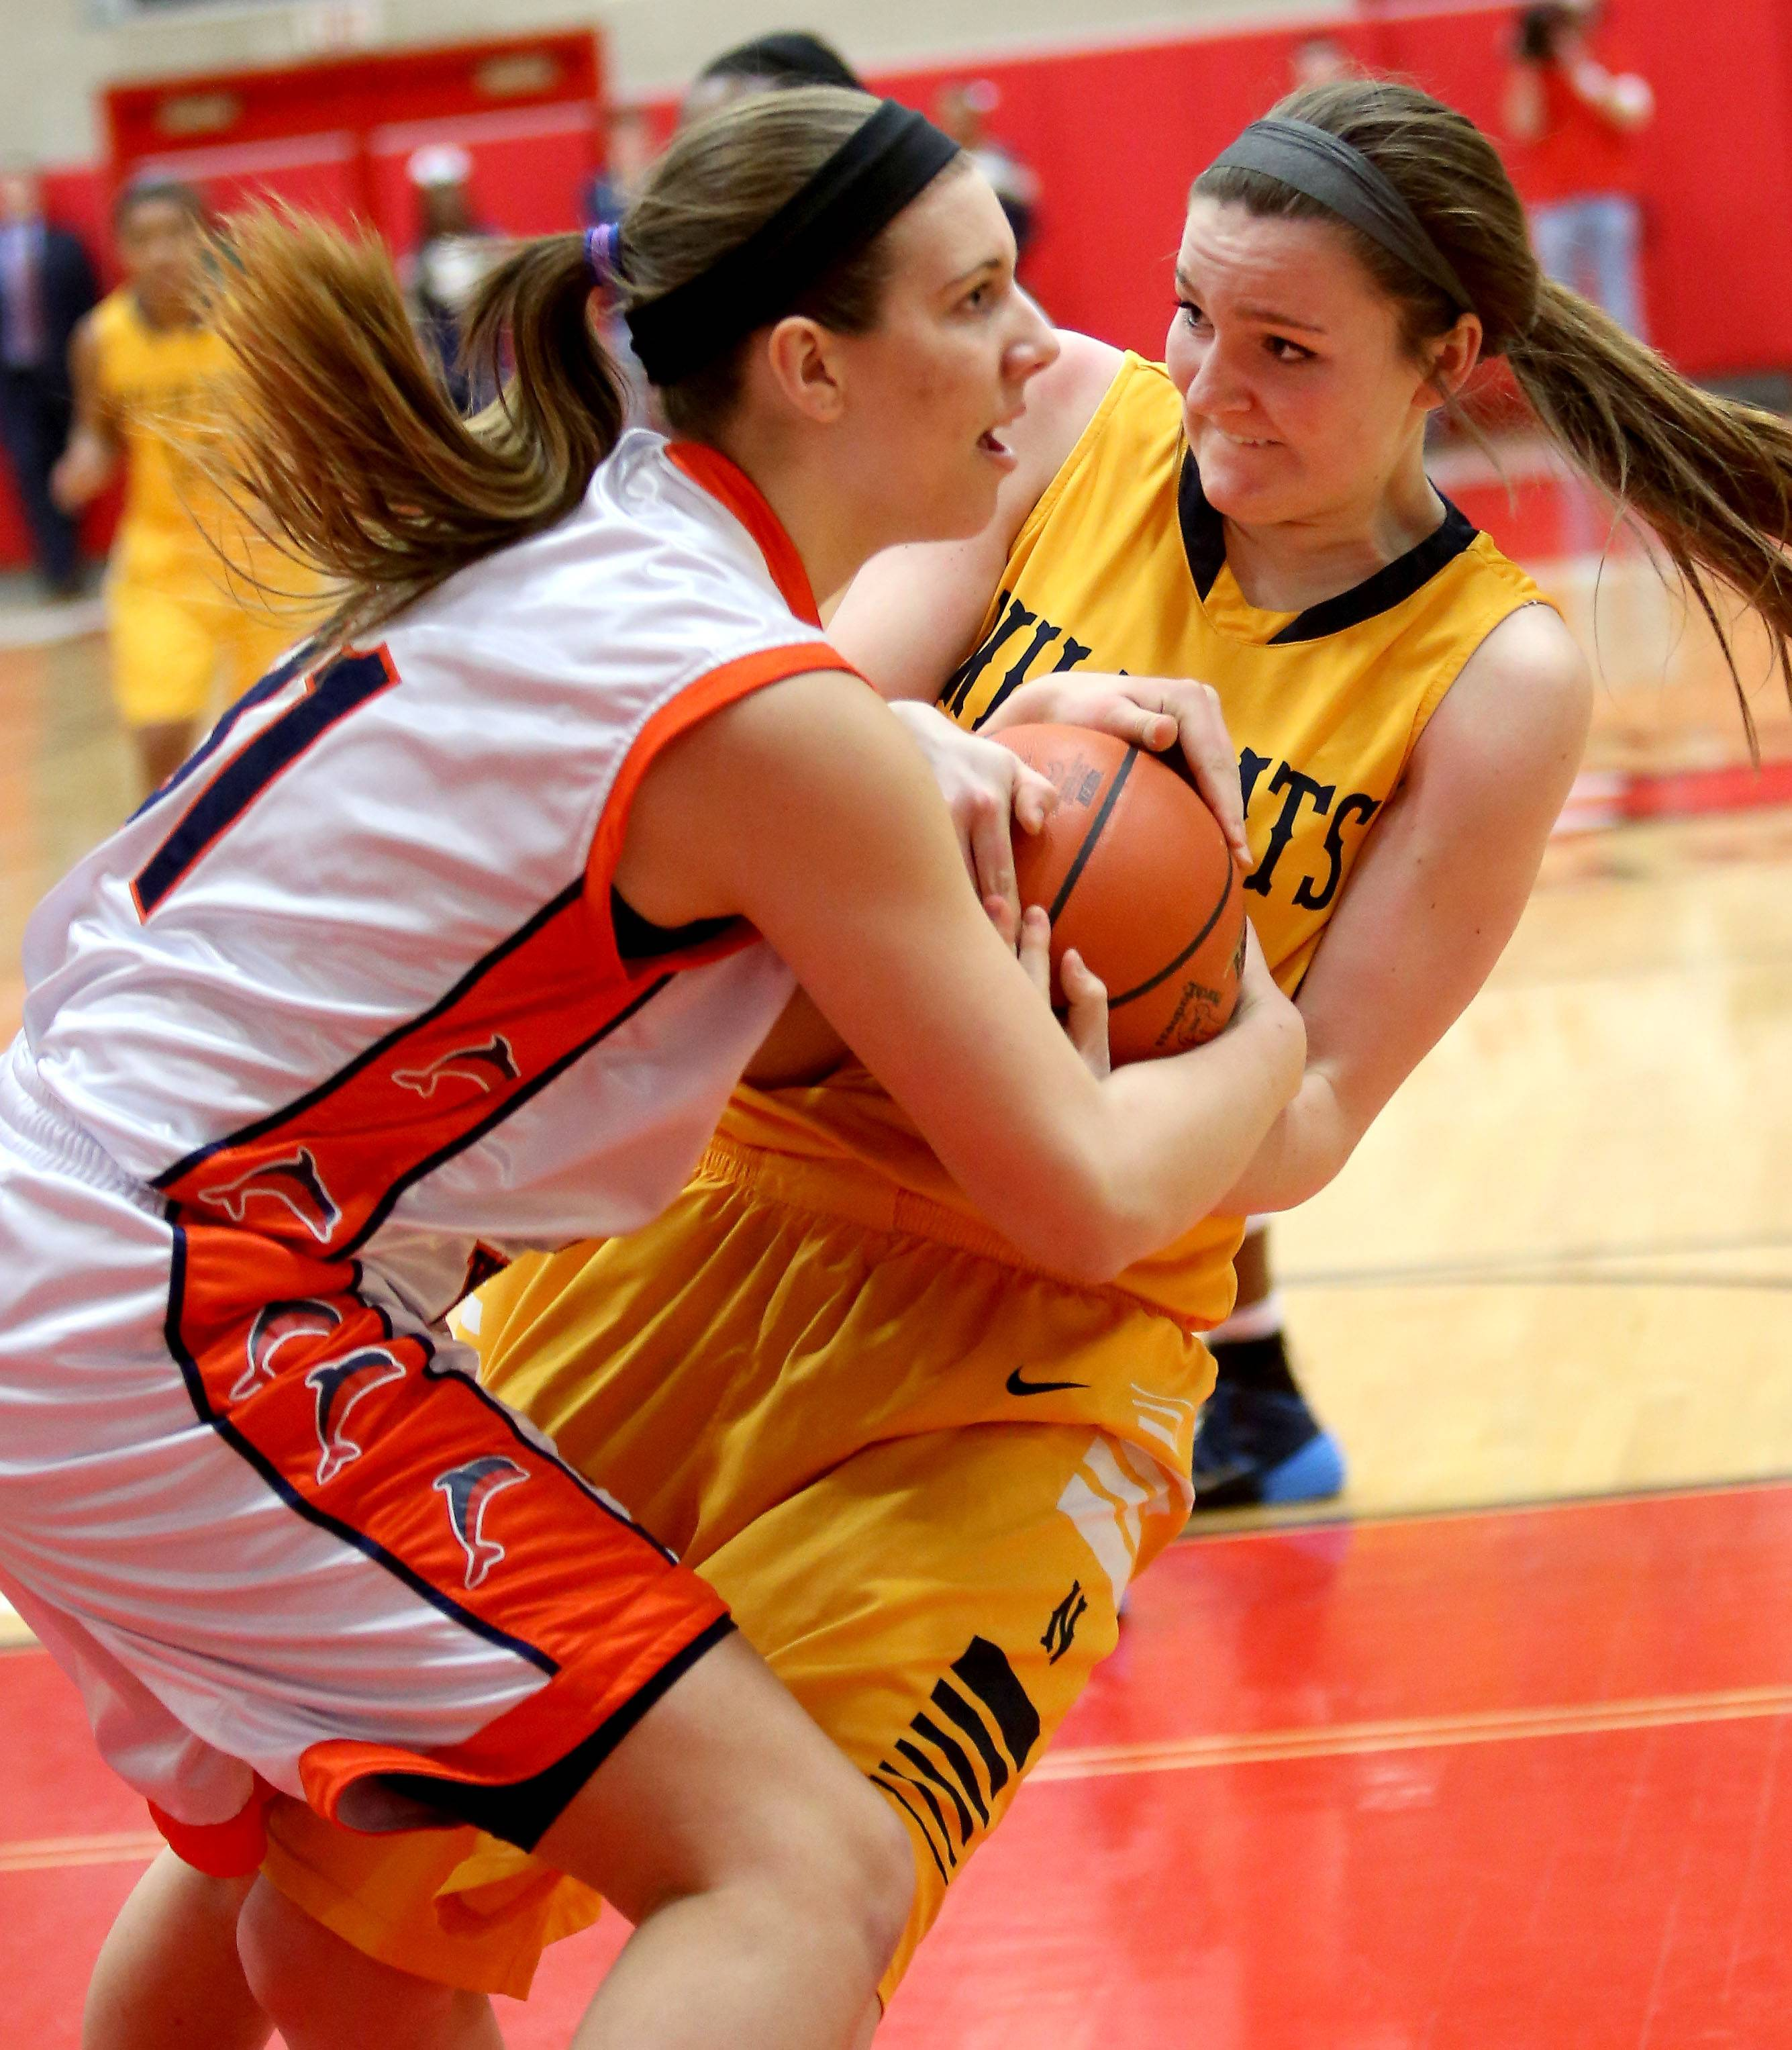 Neuqua Valley's Jamie McInereney, right, fights for the ball with Isabelle Spingola of Whitney Young.